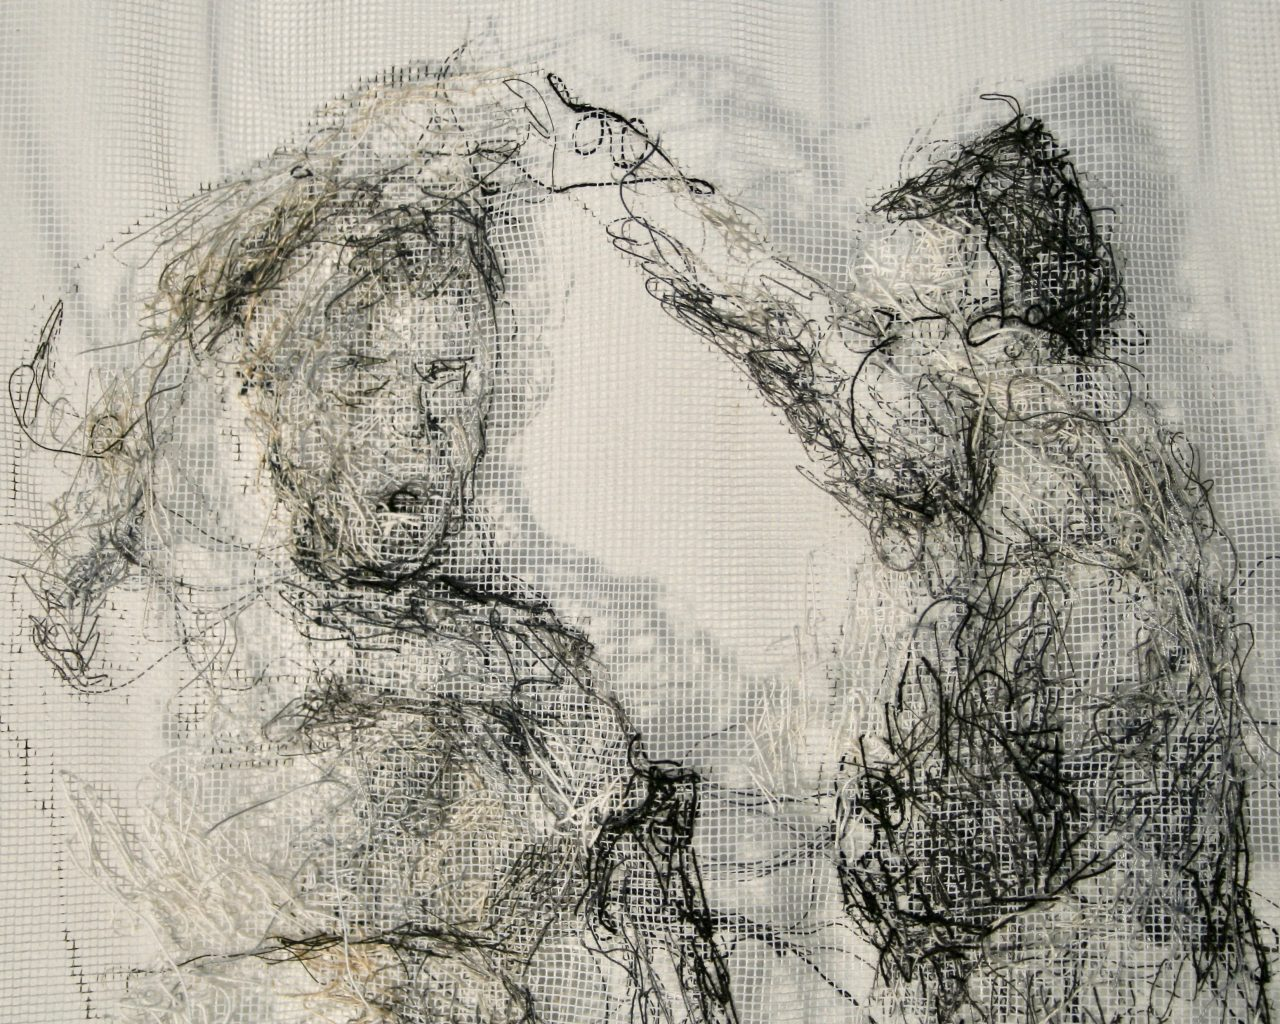 two women, threads/curtain, 60cm x 55cm